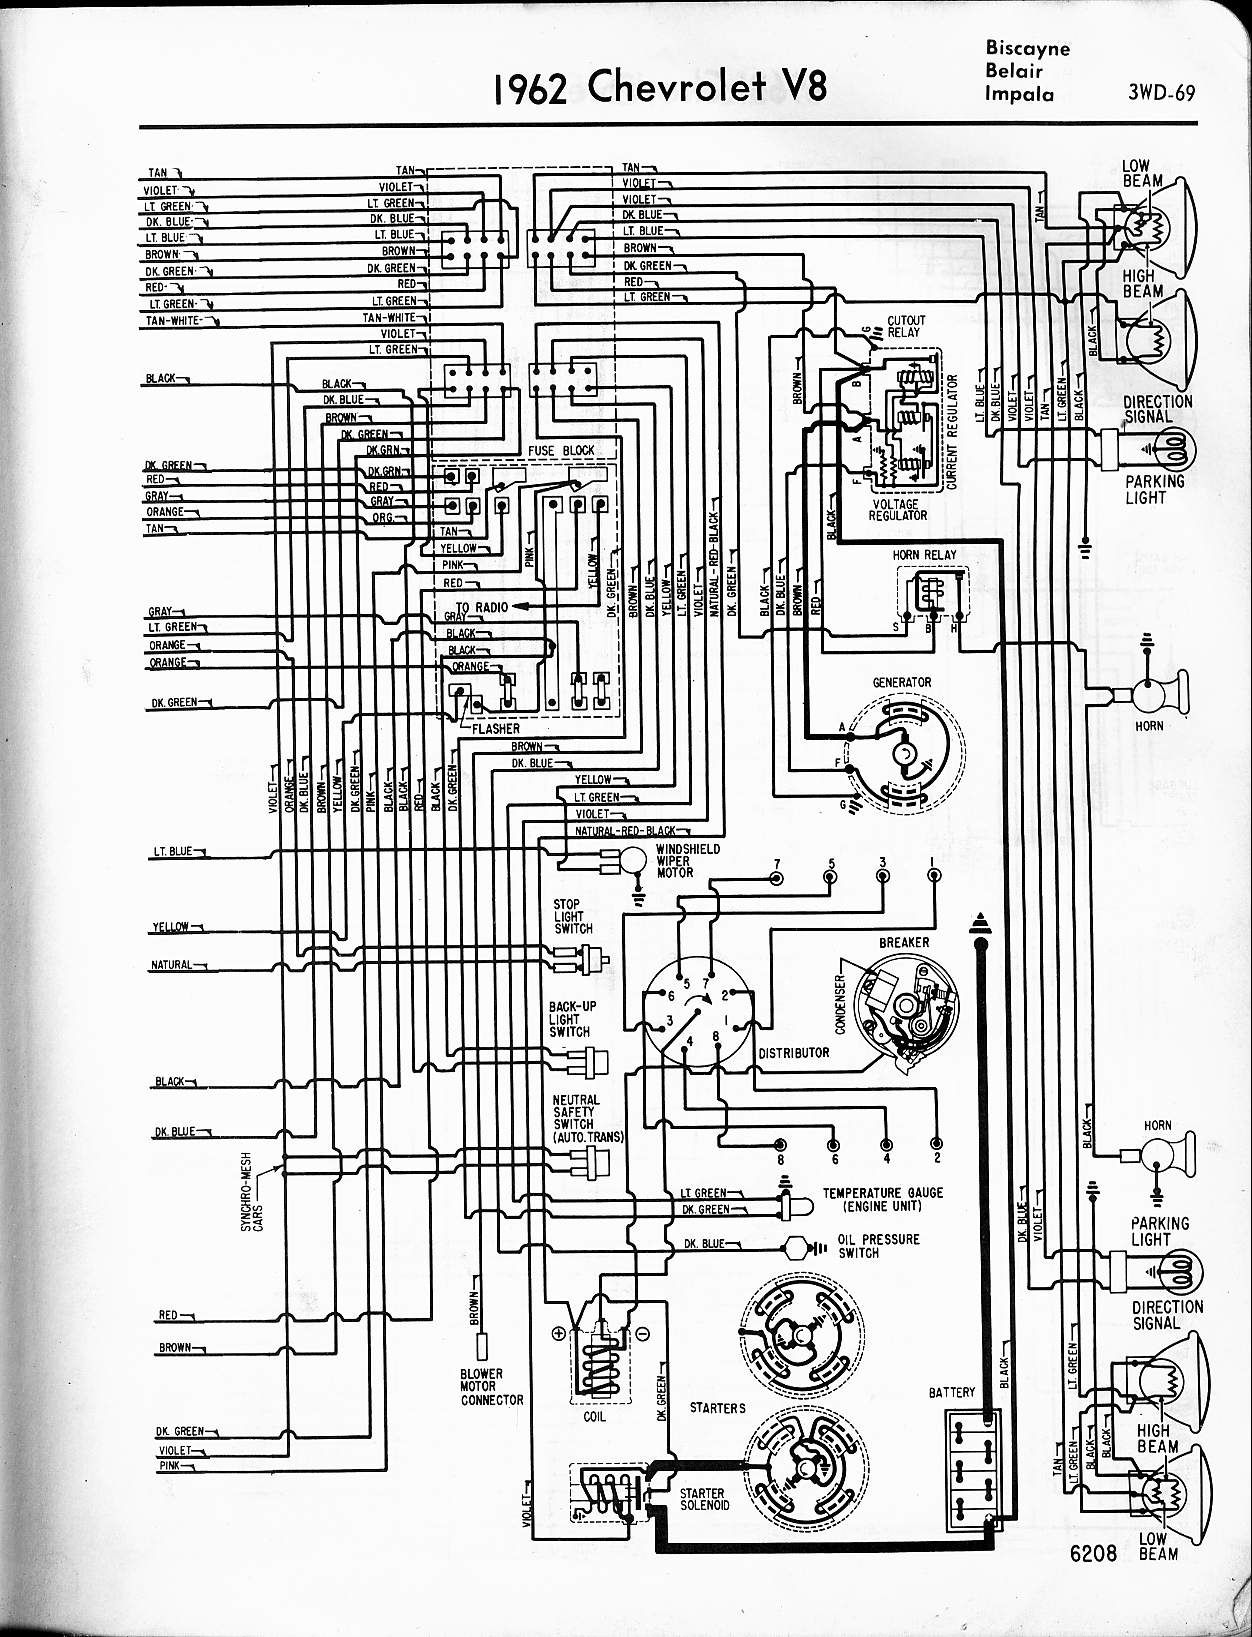 toyota 3 wire alternator wiring diagram wiring diagram and toyota alternator wiring diagram partment area joining numbering room smallest so mini and cant see for mores townace plus sites